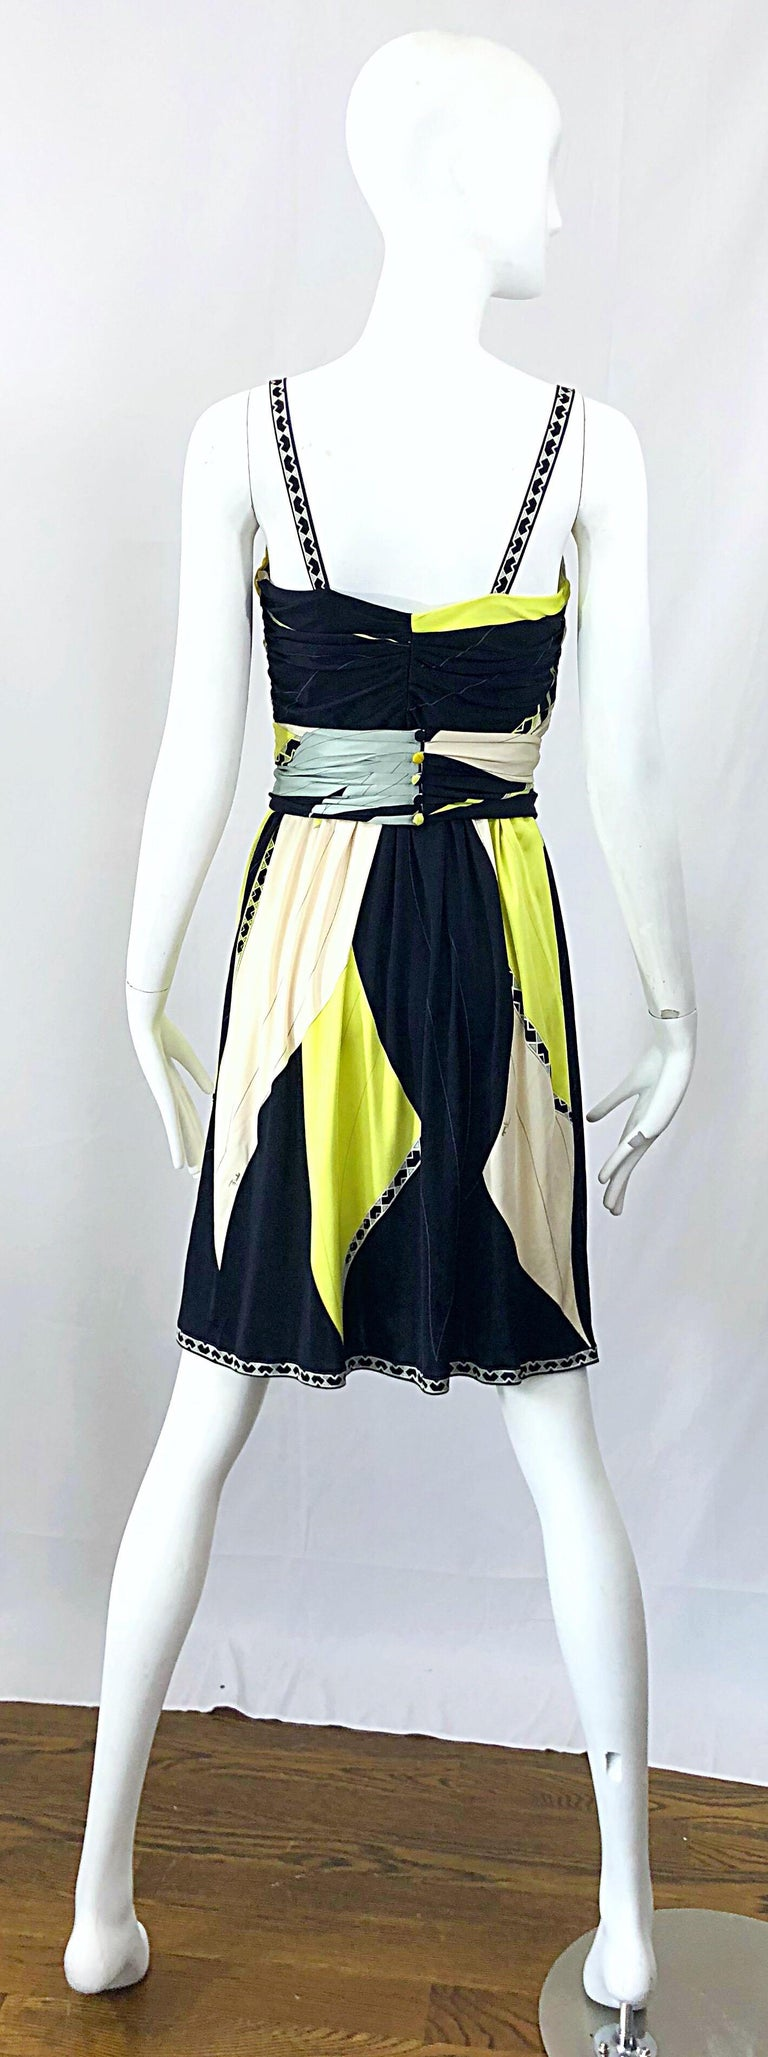 Emilio Pucci 1990s Size 8 Chartreuse Black Ivory Kaleidoscope Silk Jersey Dress For Sale 6